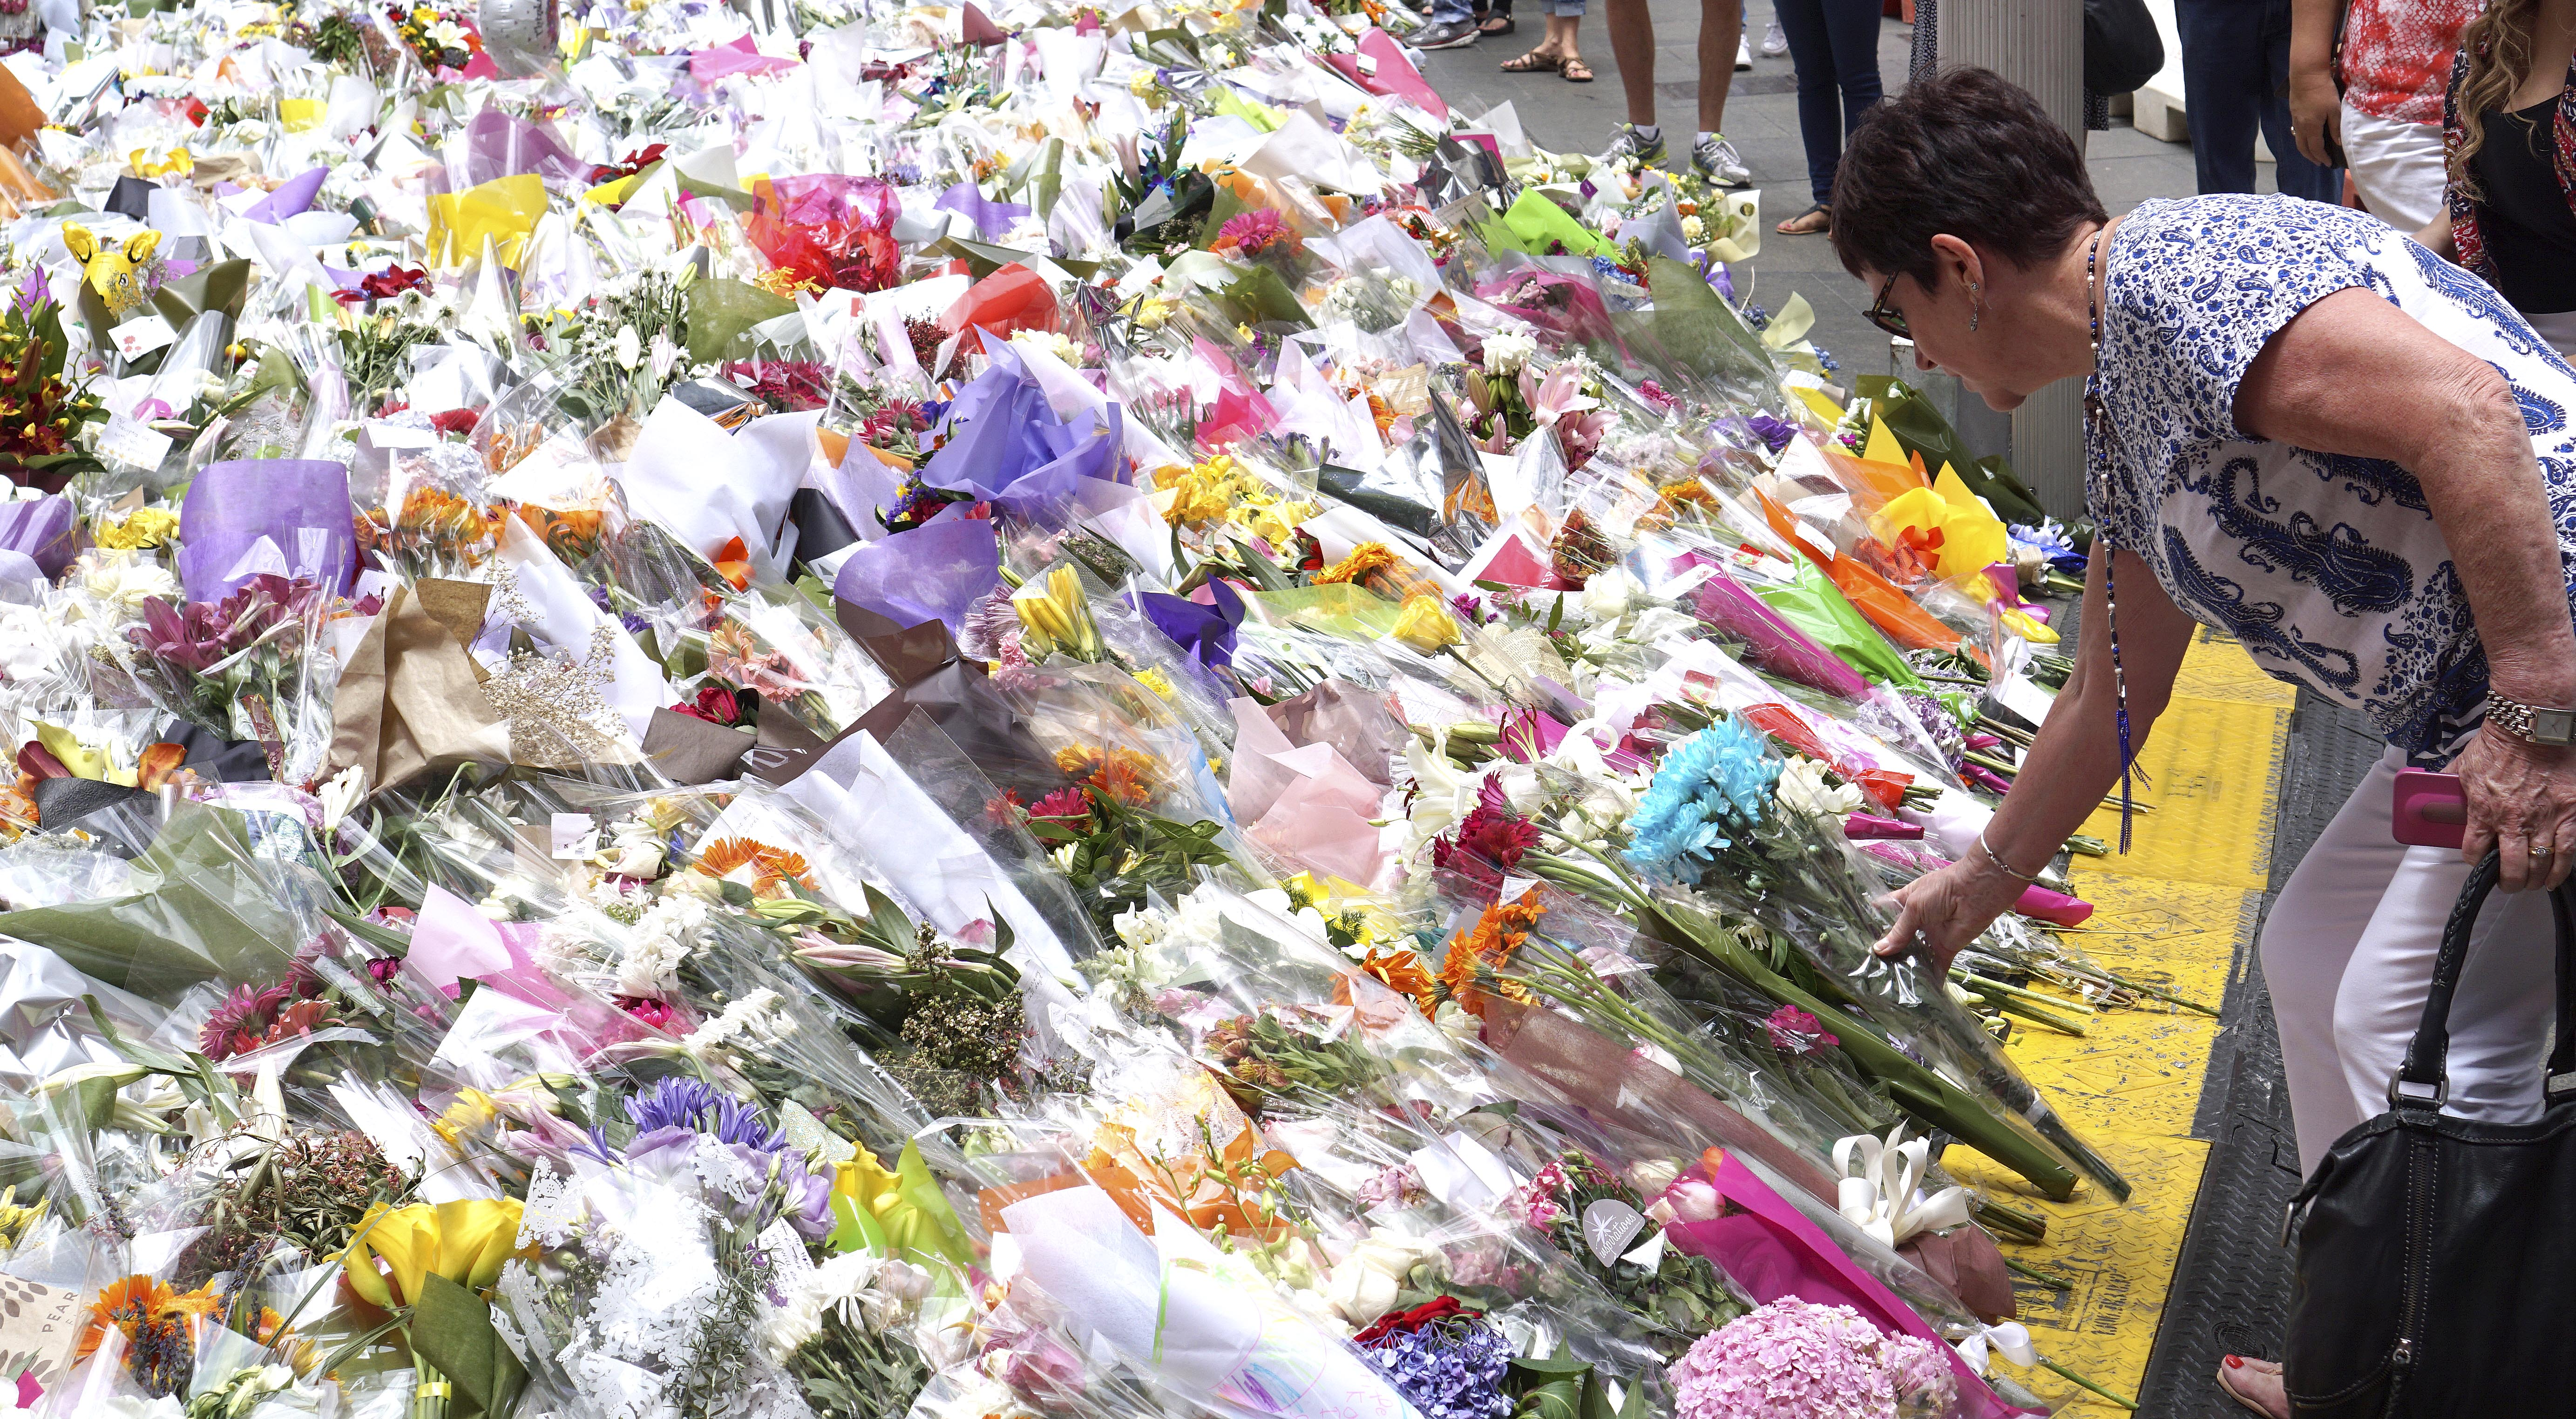 A woman places a floral tribute at a temporary memorial site close to the Lindt Chocolat Cafe in Sydney, Australia, Friday, Dec. 19, 2014.